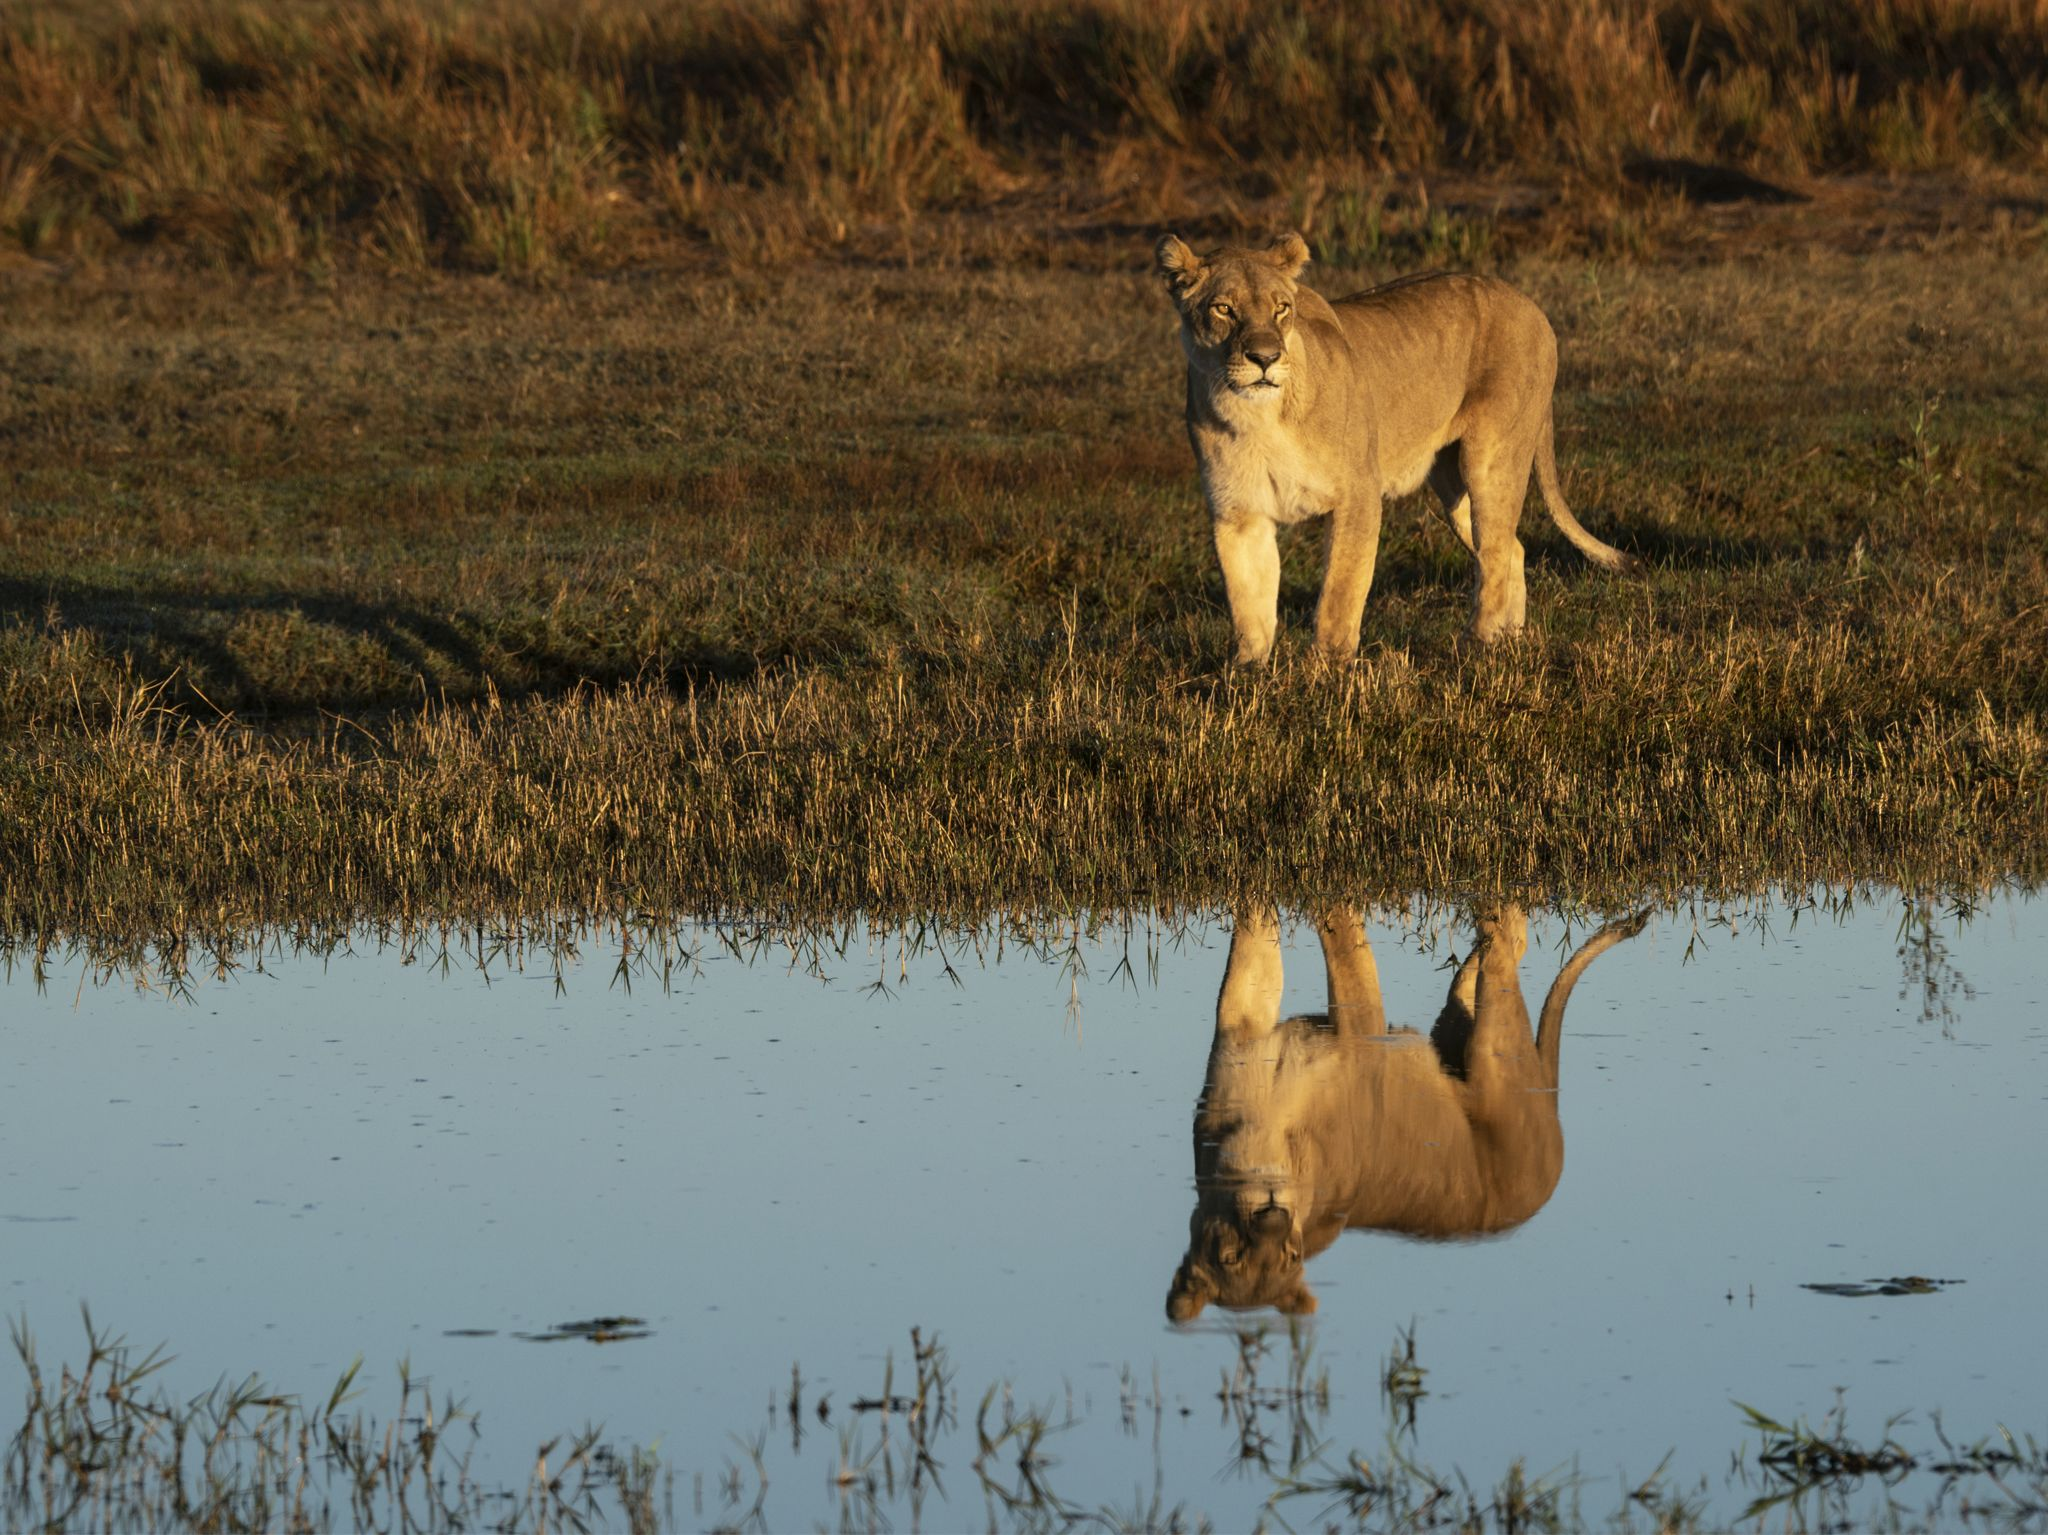 A lioness makes sure it is safe before crossing a spillway. This image is from Okavango River of... [Photo of the day - April 2020]